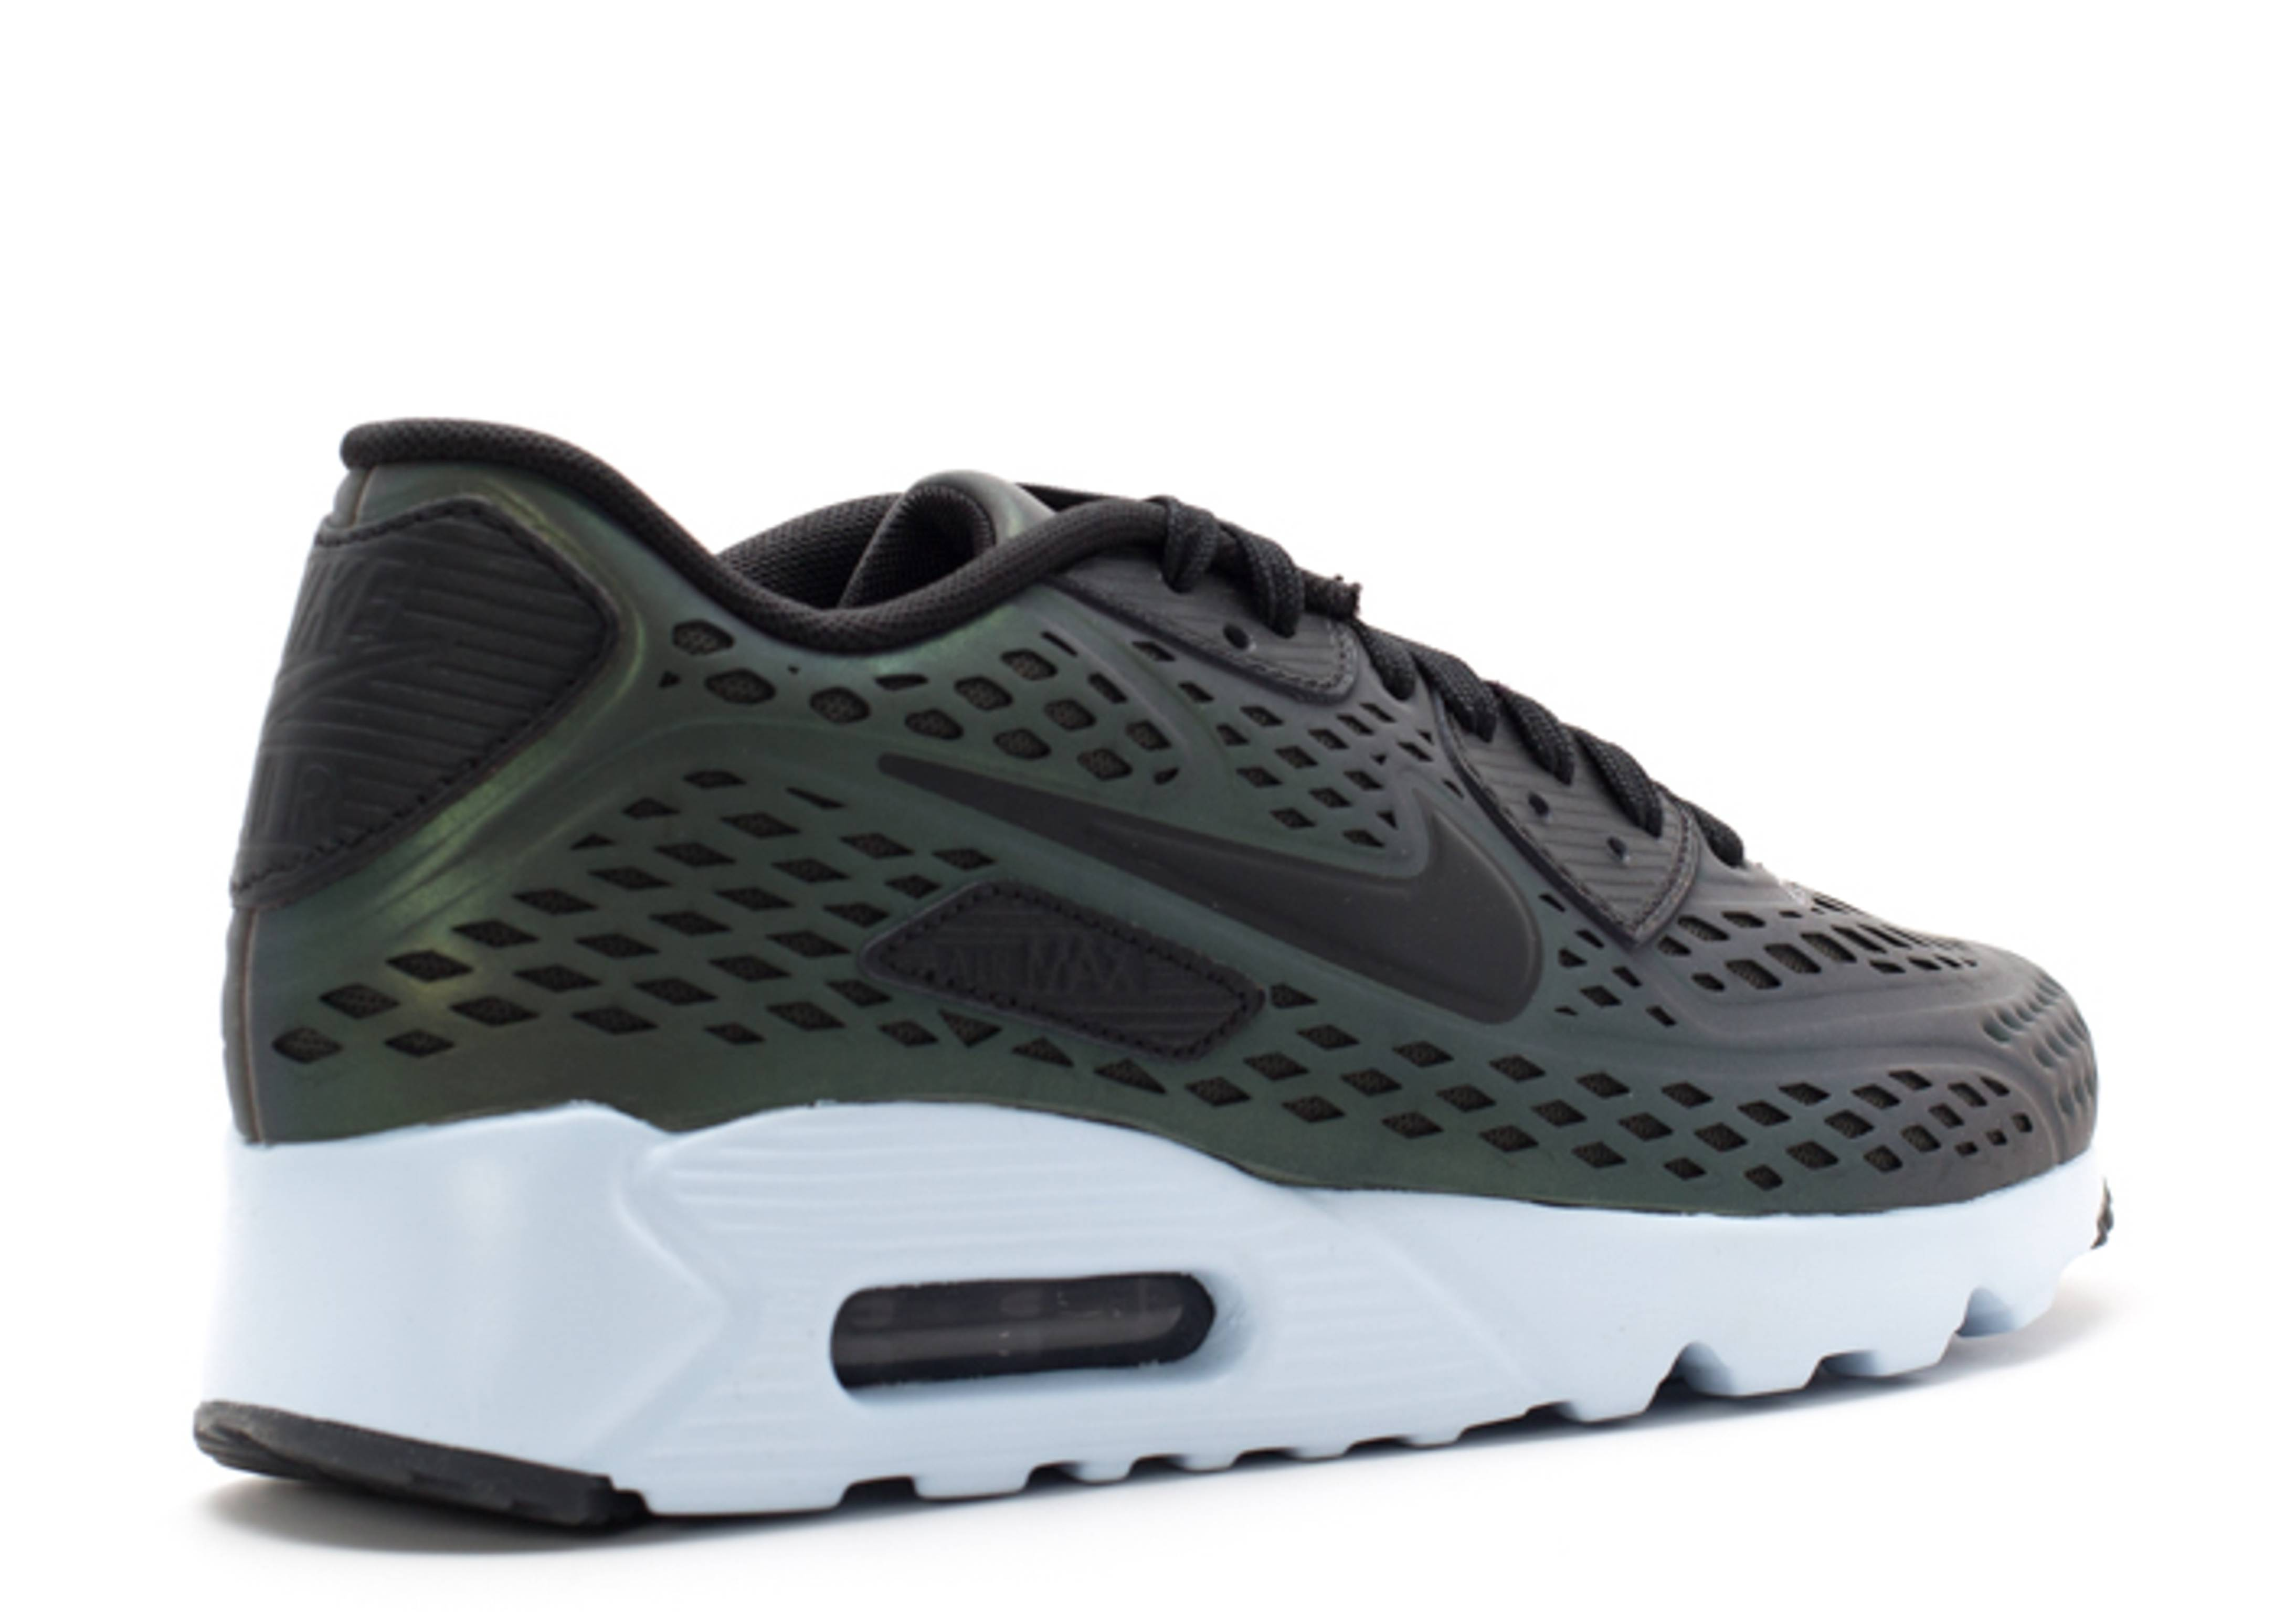 nike air max 90 ultra moire deep pewter/black-porpoise